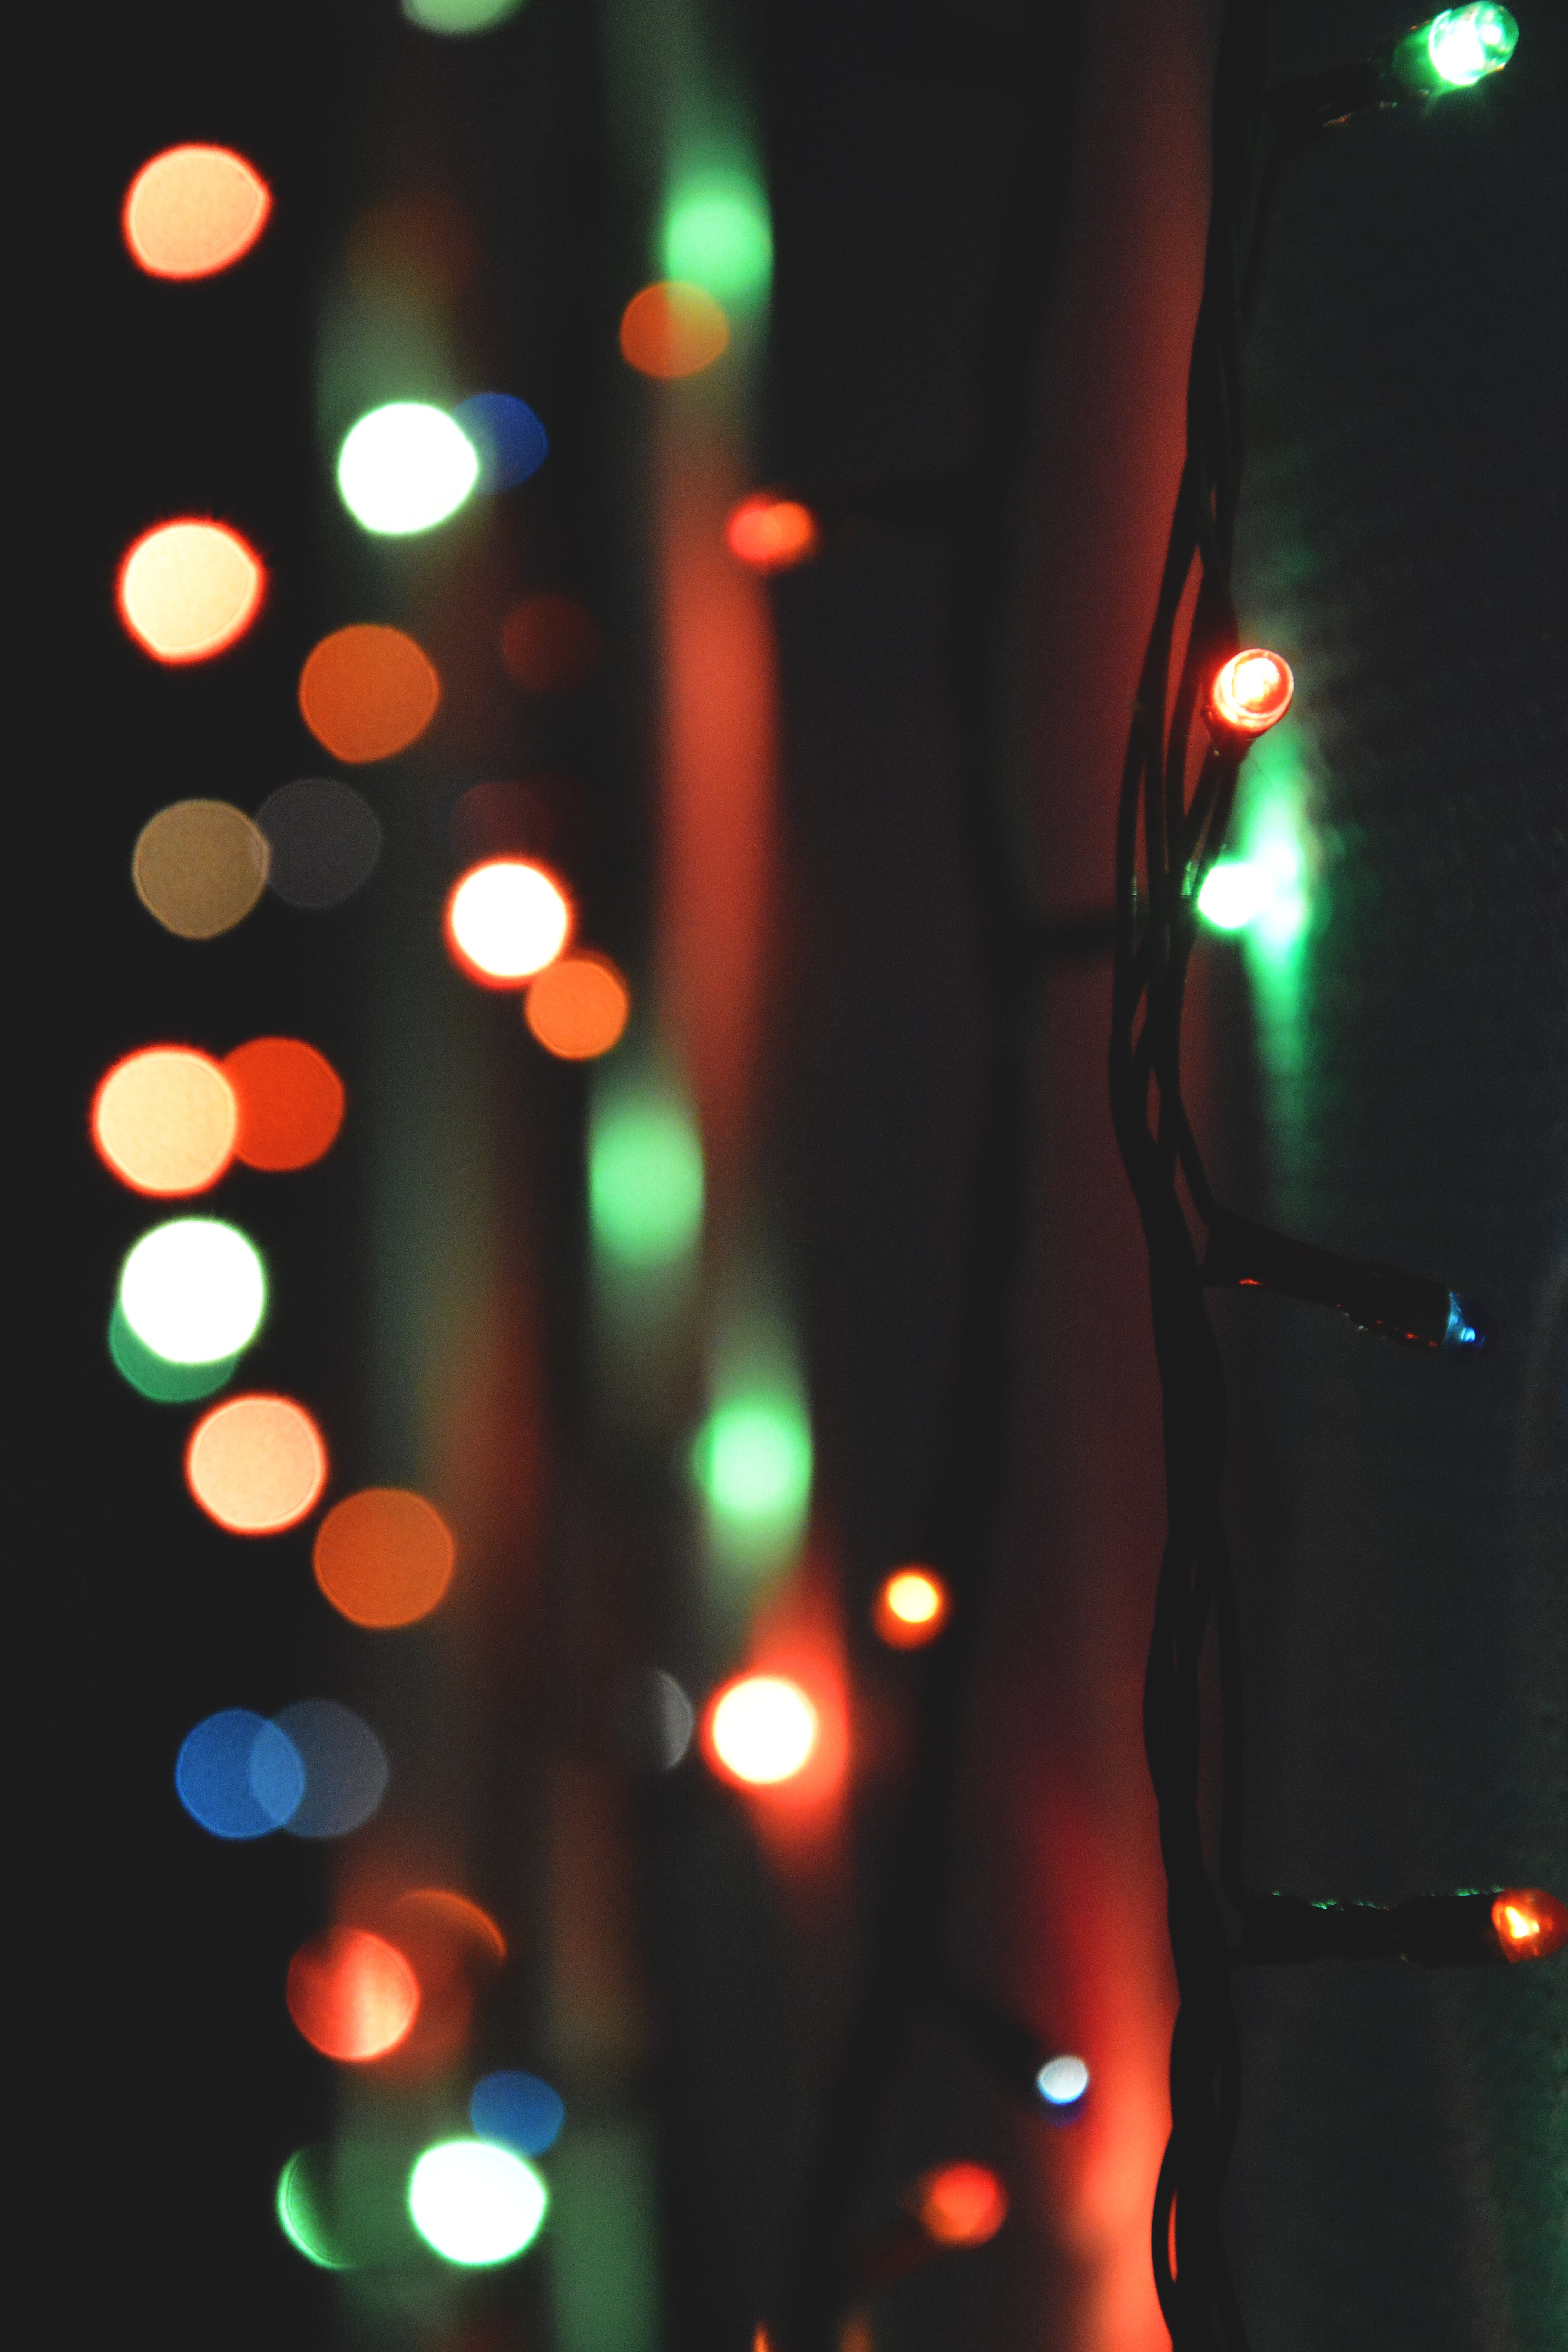 Close-Up Photo of Christmas Lights